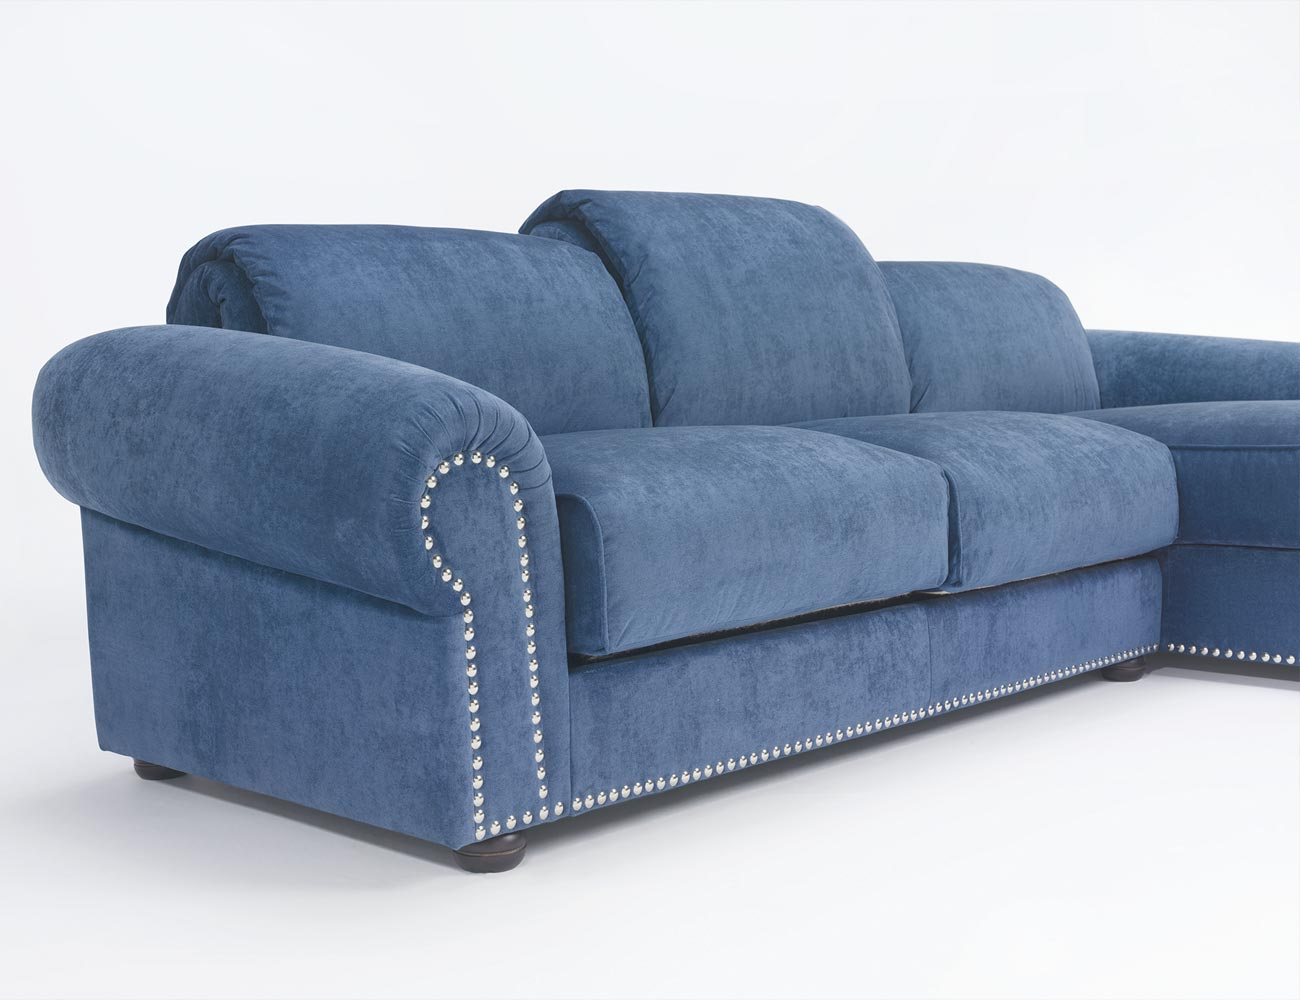 Sofa chaiselongue gran lujo decorativo azul 139